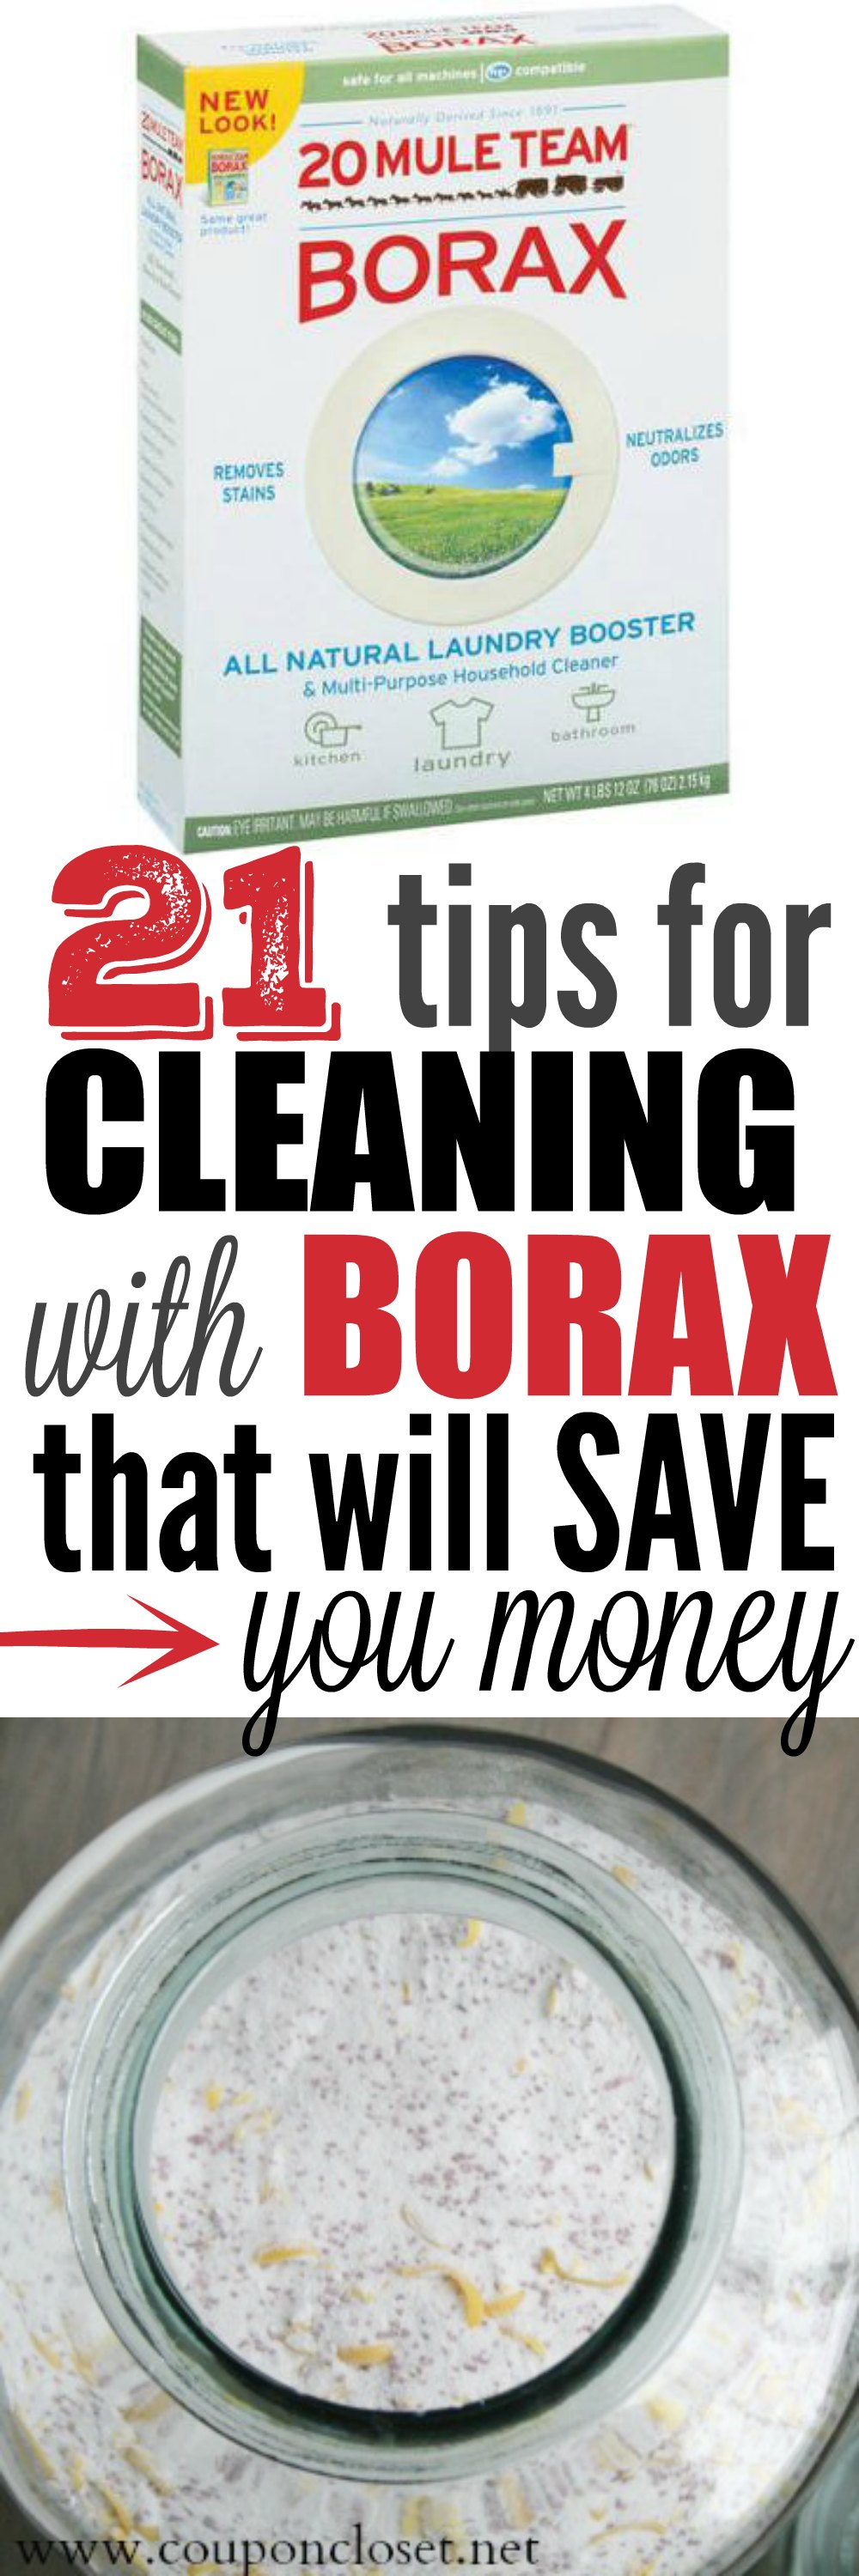 frugal tips for cleaning with borax